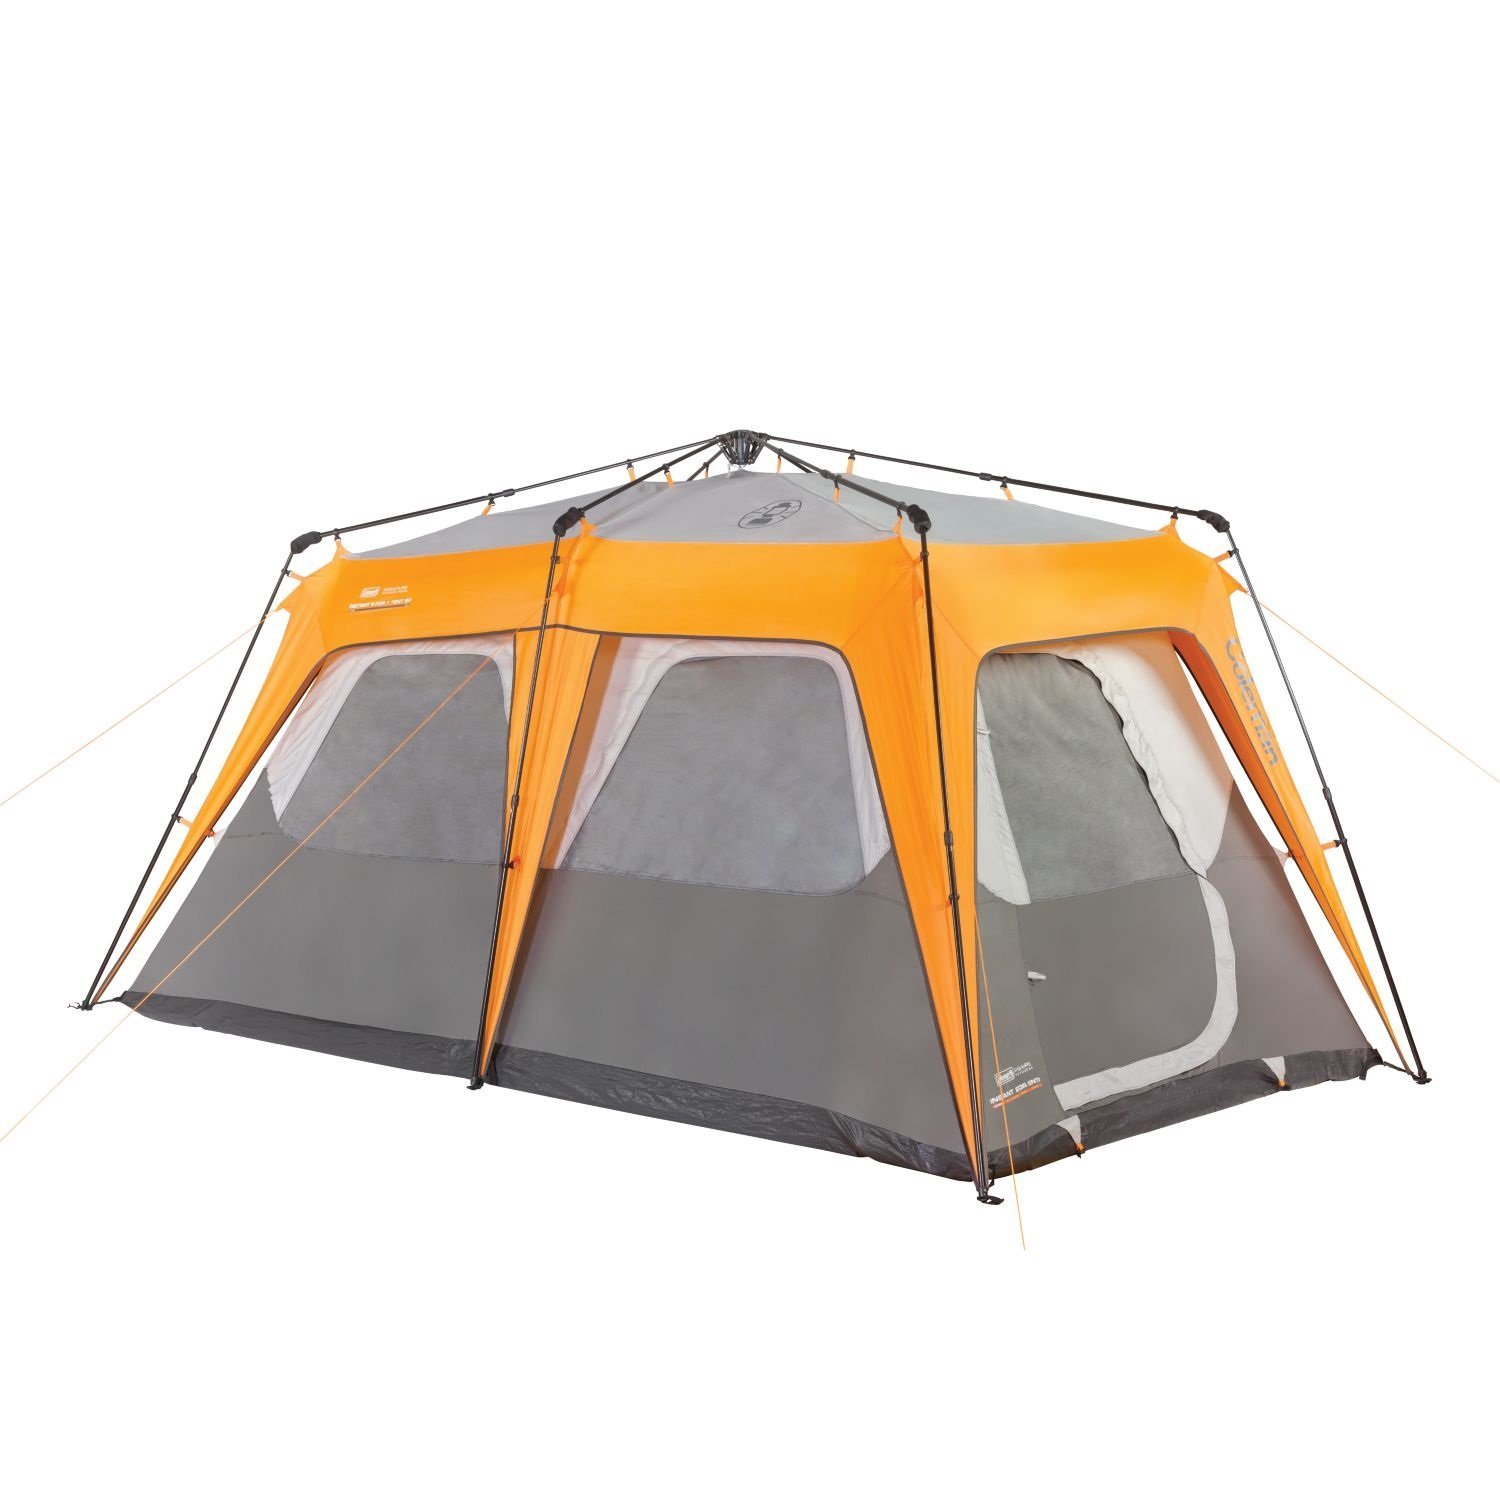 Amazon.com  Coleman Instant 2 for 1 Signature Shelter/Tent (8-Person)  Sports u0026 Outdoors  sc 1 st  Amazon.com & Amazon.com : Coleman Instant 2 for 1 Signature Shelter/Tent (8 ...